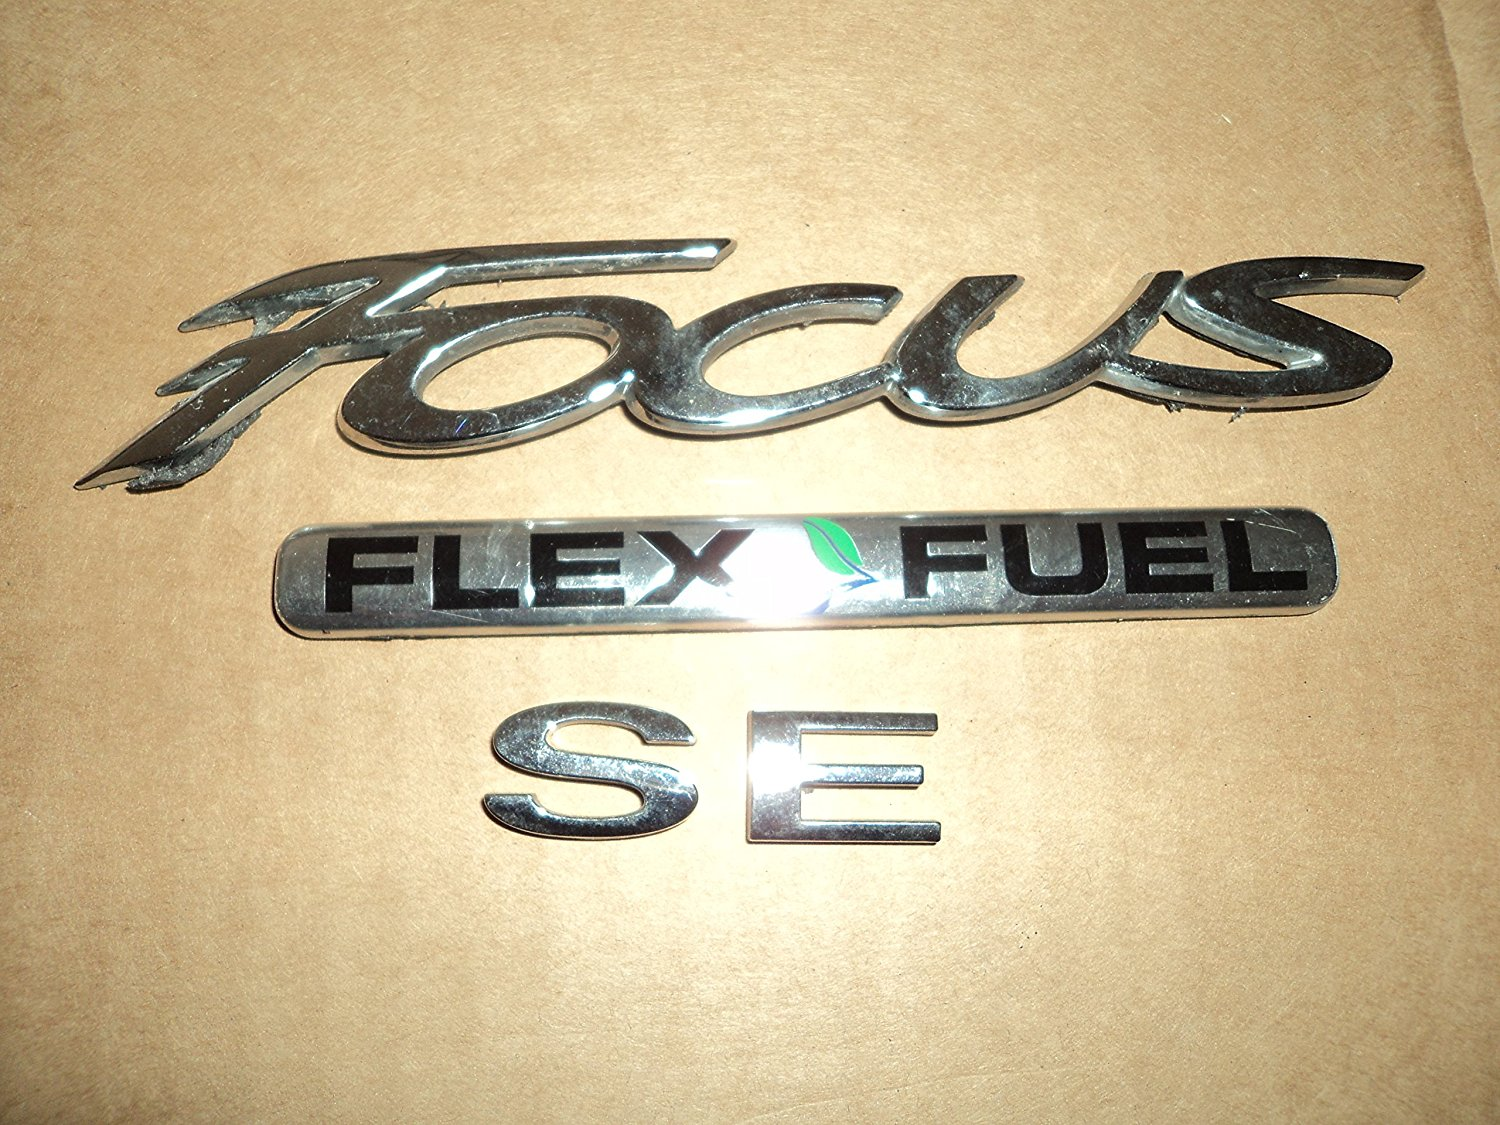 Cheap Fuel Filter Ford Focus Find Deals On Explorer Sport Trac Get Quotations 2012 Se Flex Used Emblem Trunk Oem Chrome Badge Sign Logo Symbol Set